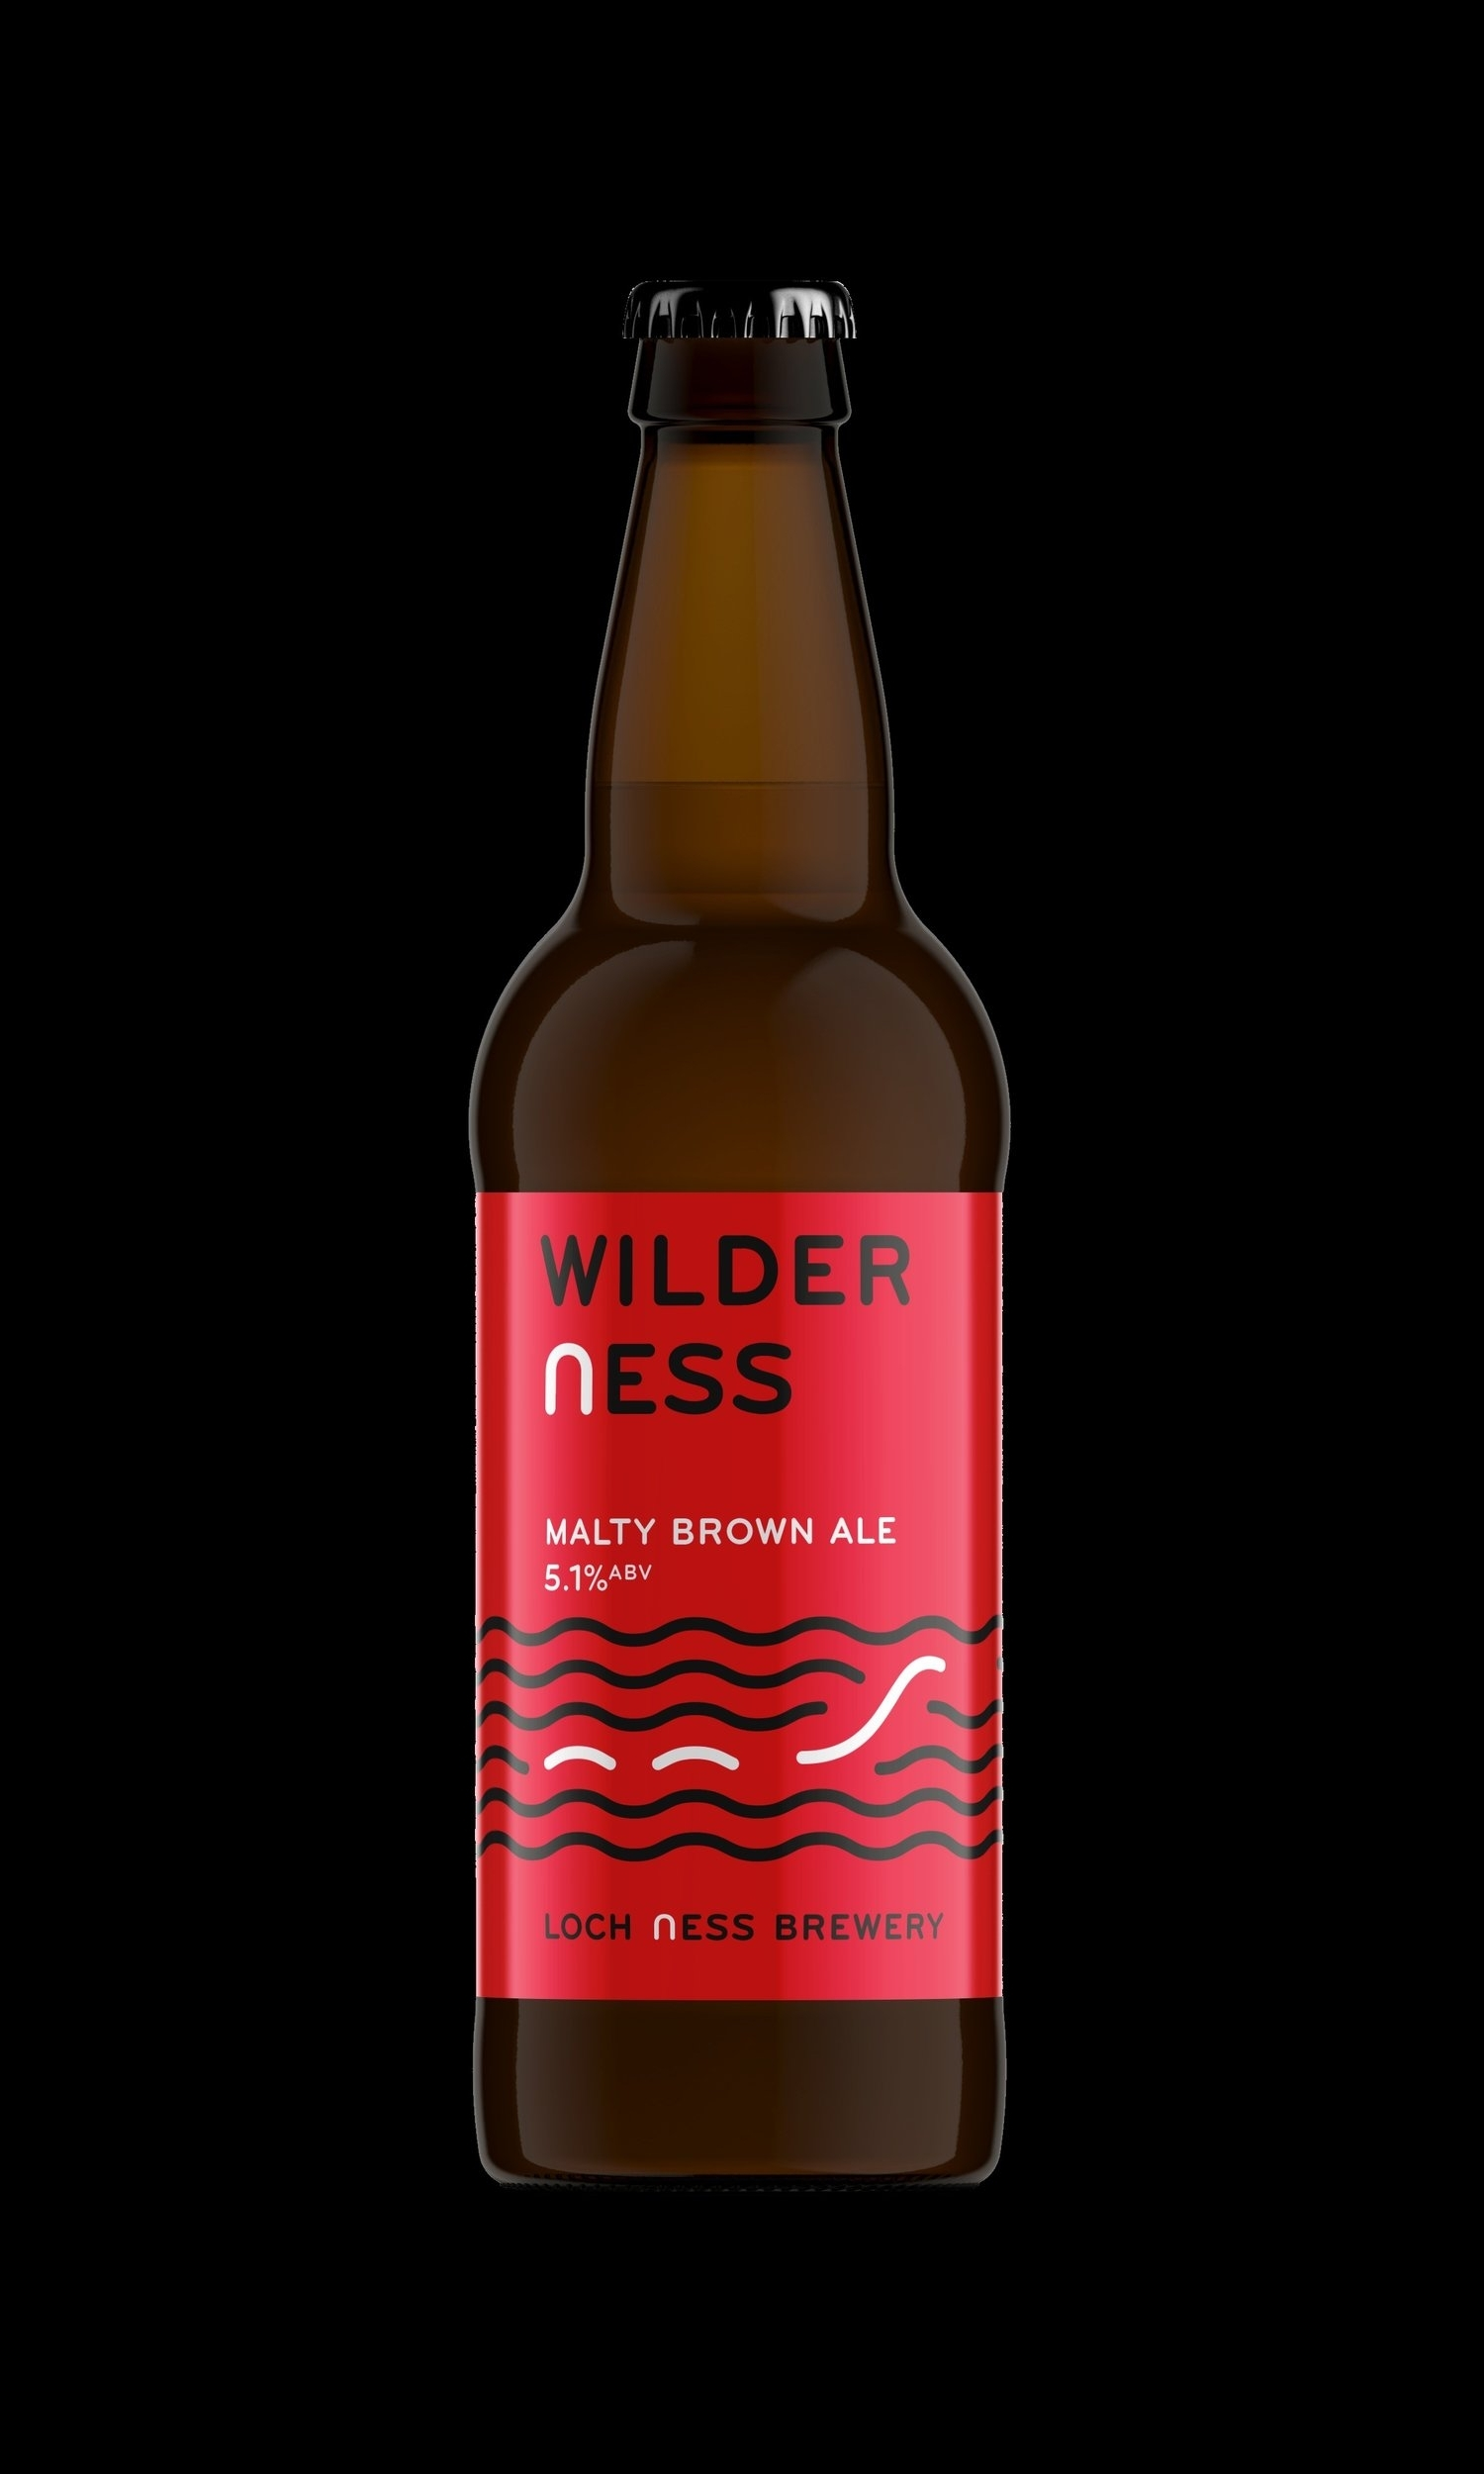 Loch Ness Brewery_WilderNess_500ml Bottle _DARK_BGRD.jpg